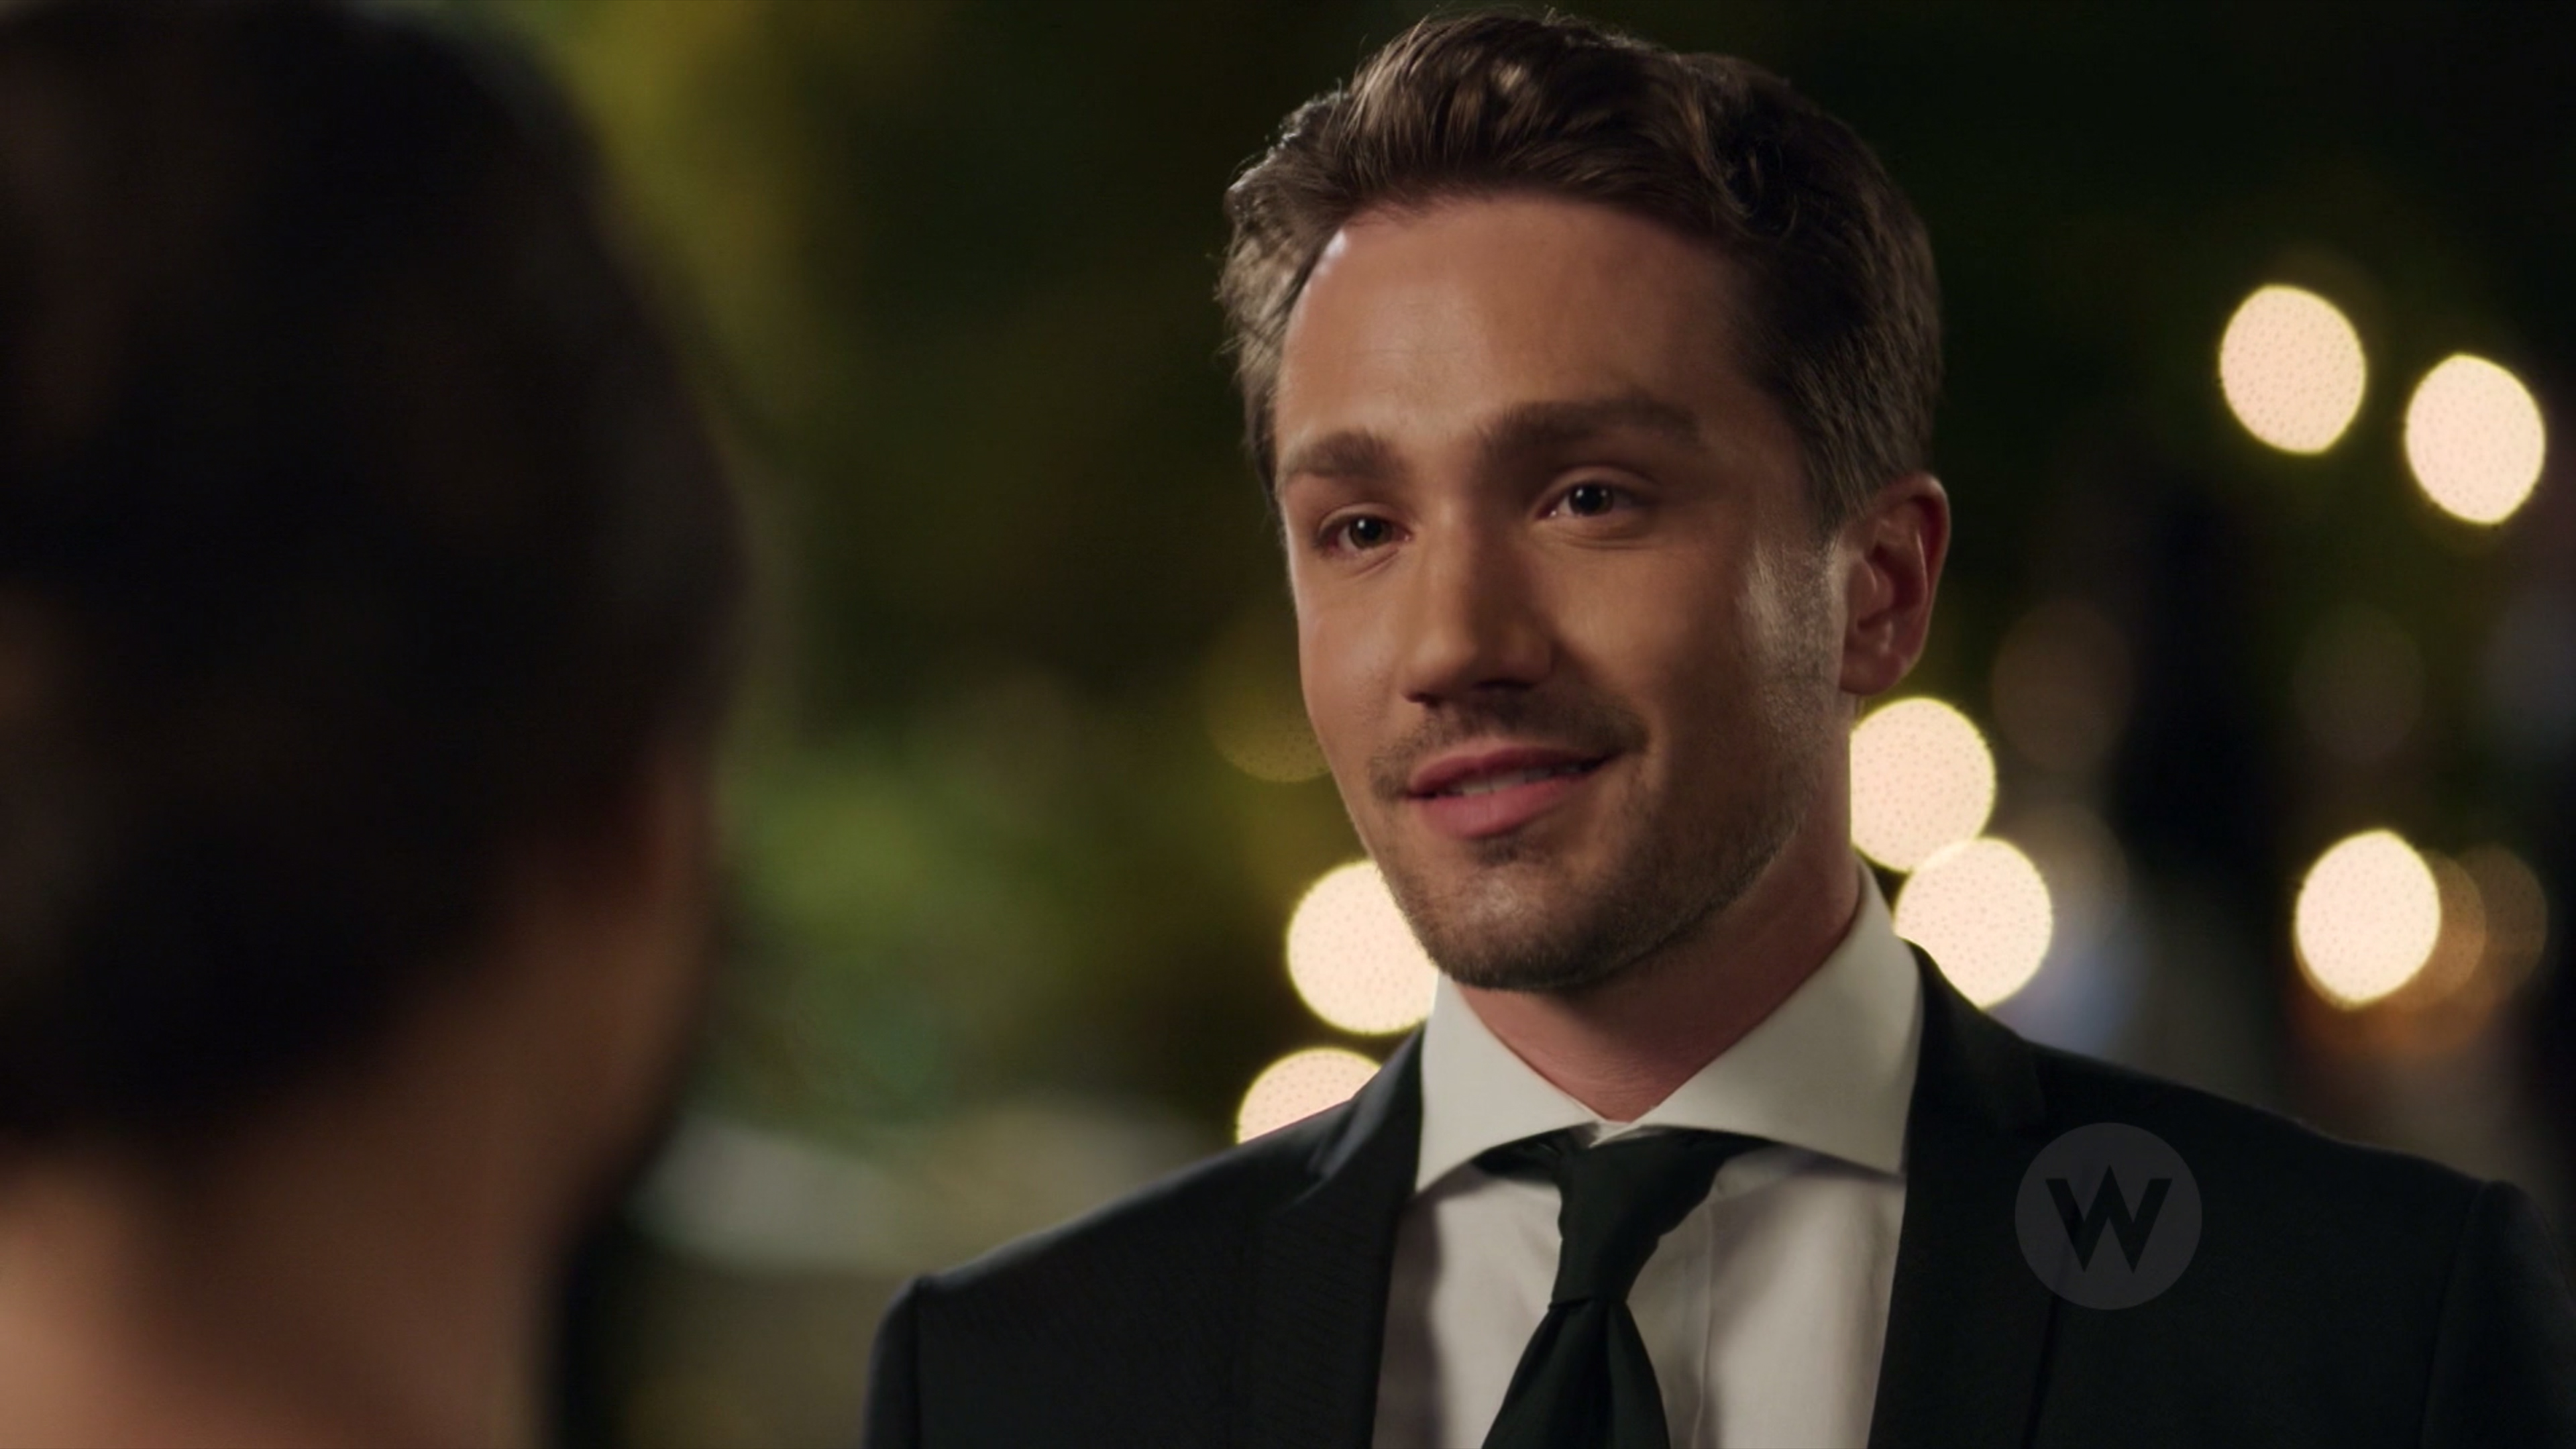 Jake Foy in Eat, Drink & Be Married (2019)